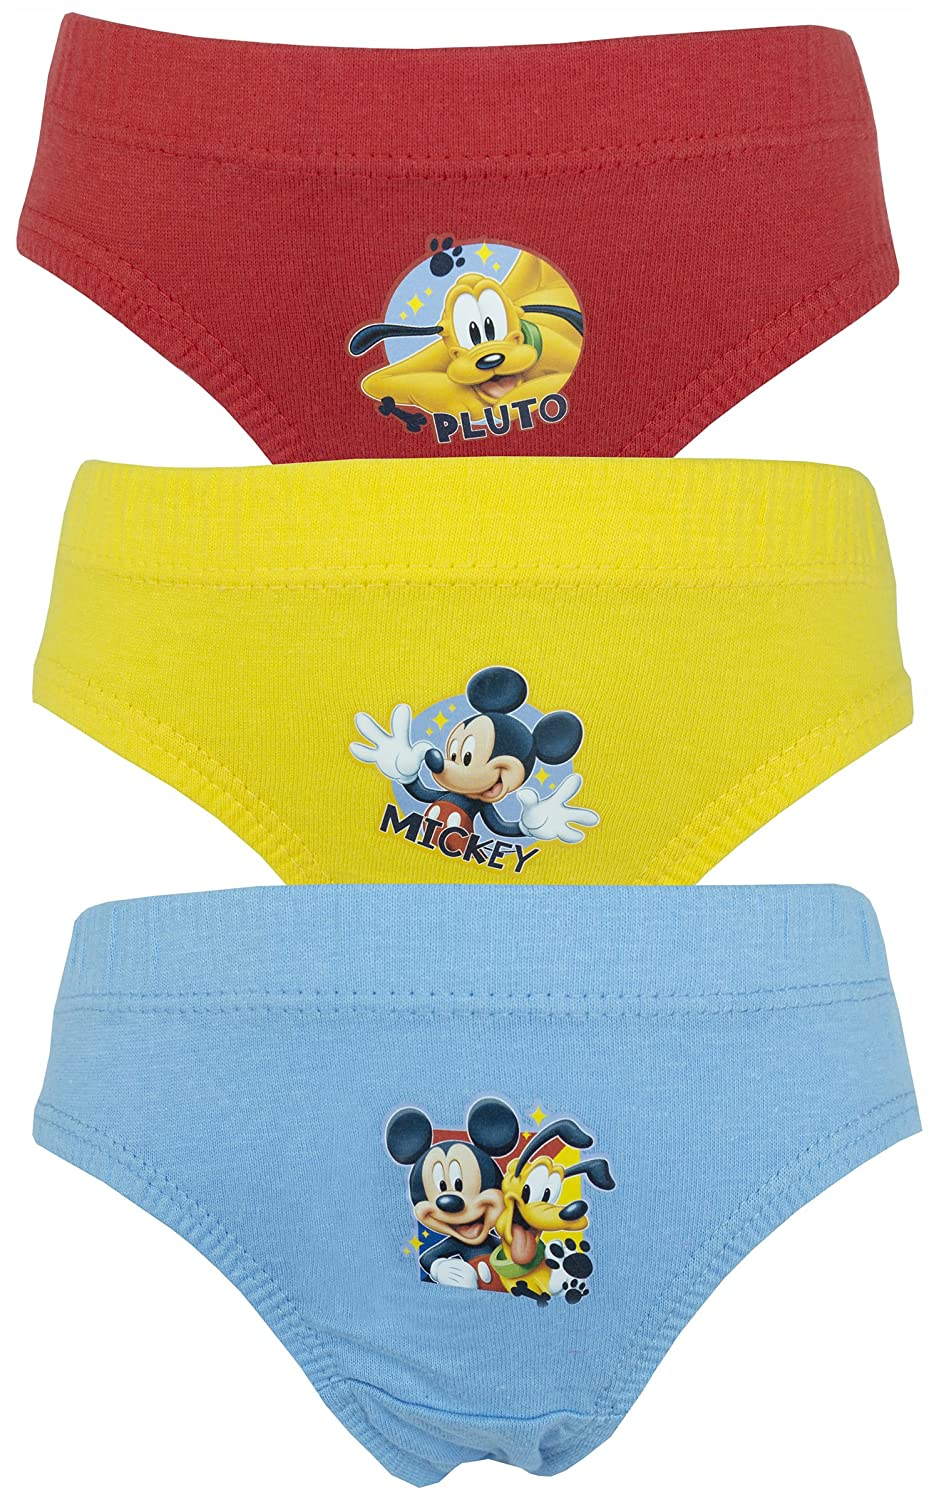 Disney Mickey Mouse & Pluto Boys 3 Pack Pants/Knickers